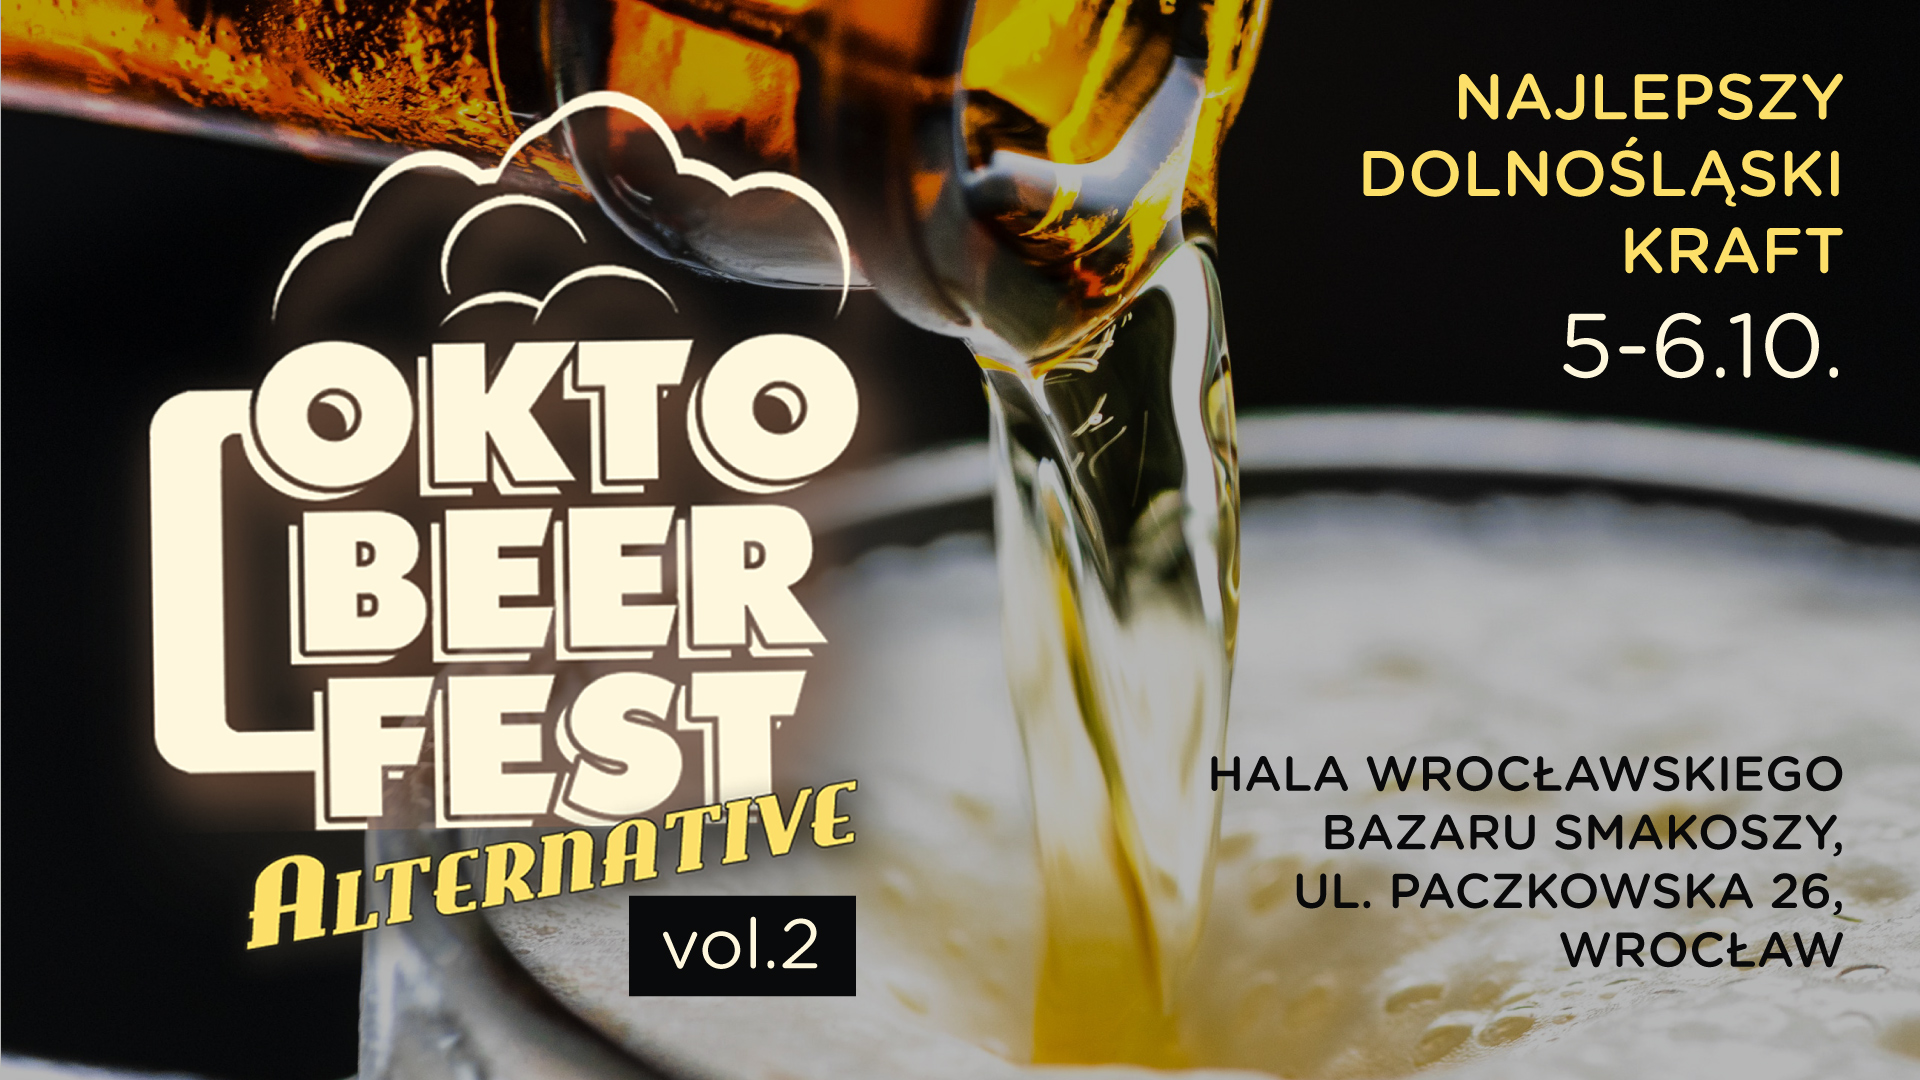 Oktobeerfest Alternative 2018